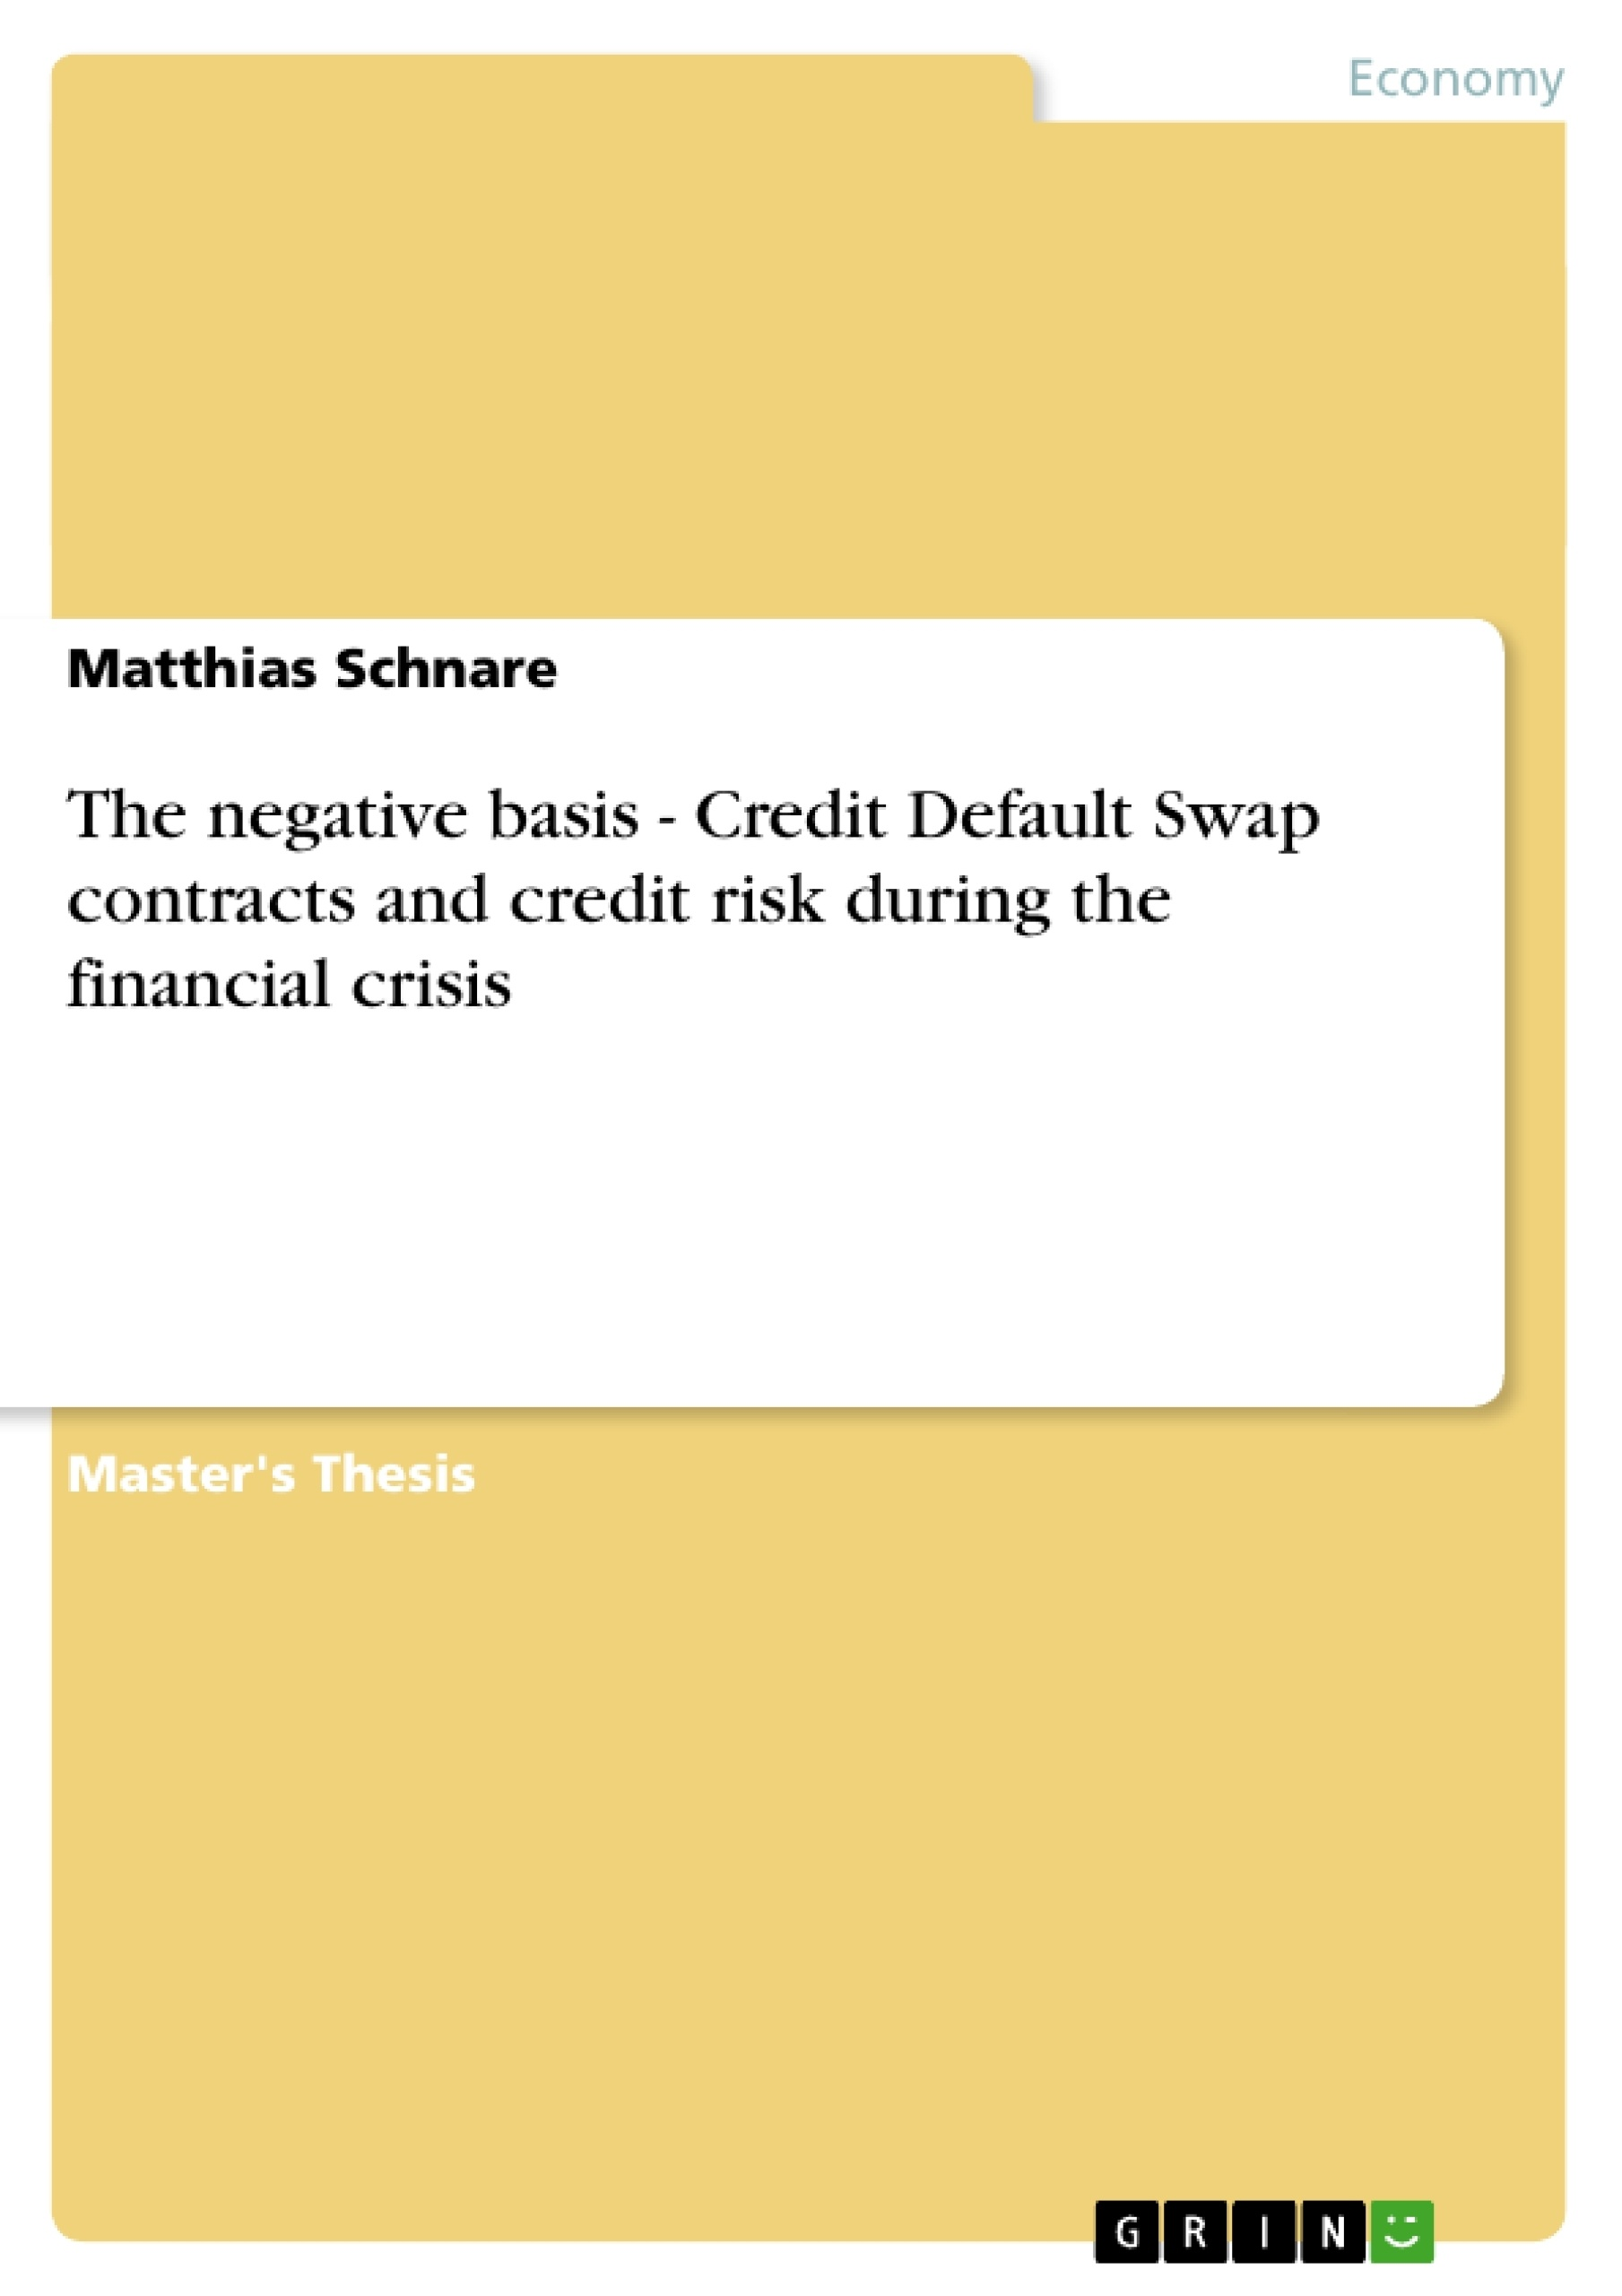 credit default swap master thesis